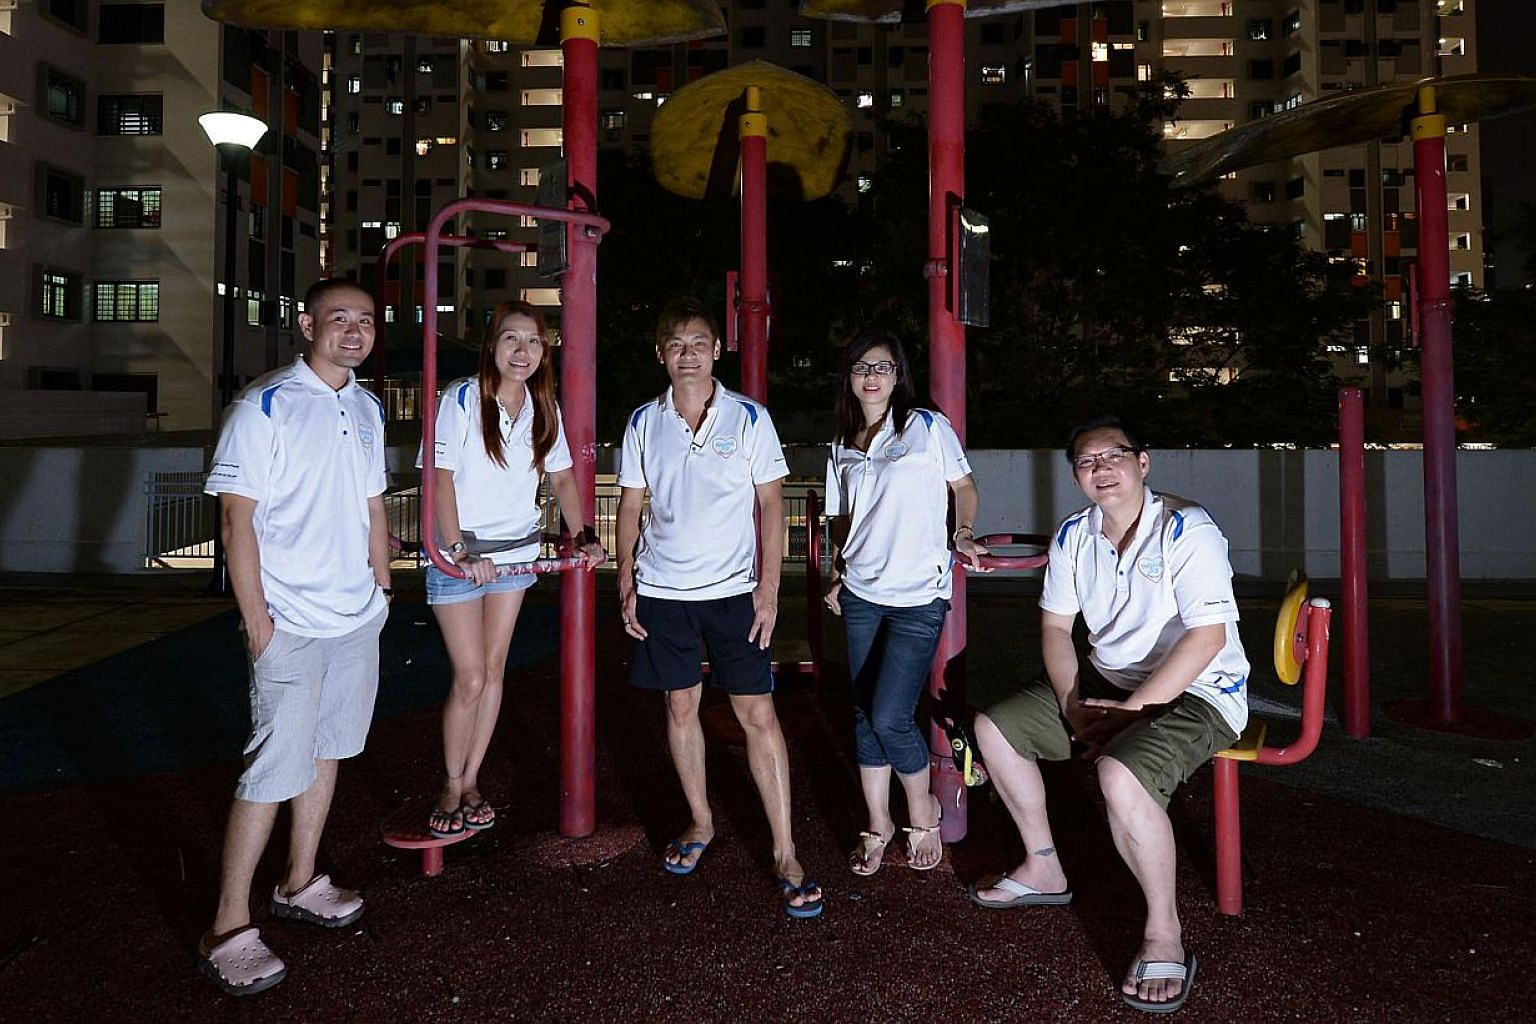 Some of Helping Joy's volunteers (from left) Roy Yuan, 32, Irene Soon, 36, Steven Goh, 36, Amy Tay, 44, and Nelson Ong, 40. Mr Goh founded the group with friends in 2012, and it now has about 20 regular volunteers. On Sunday, the group will be giving